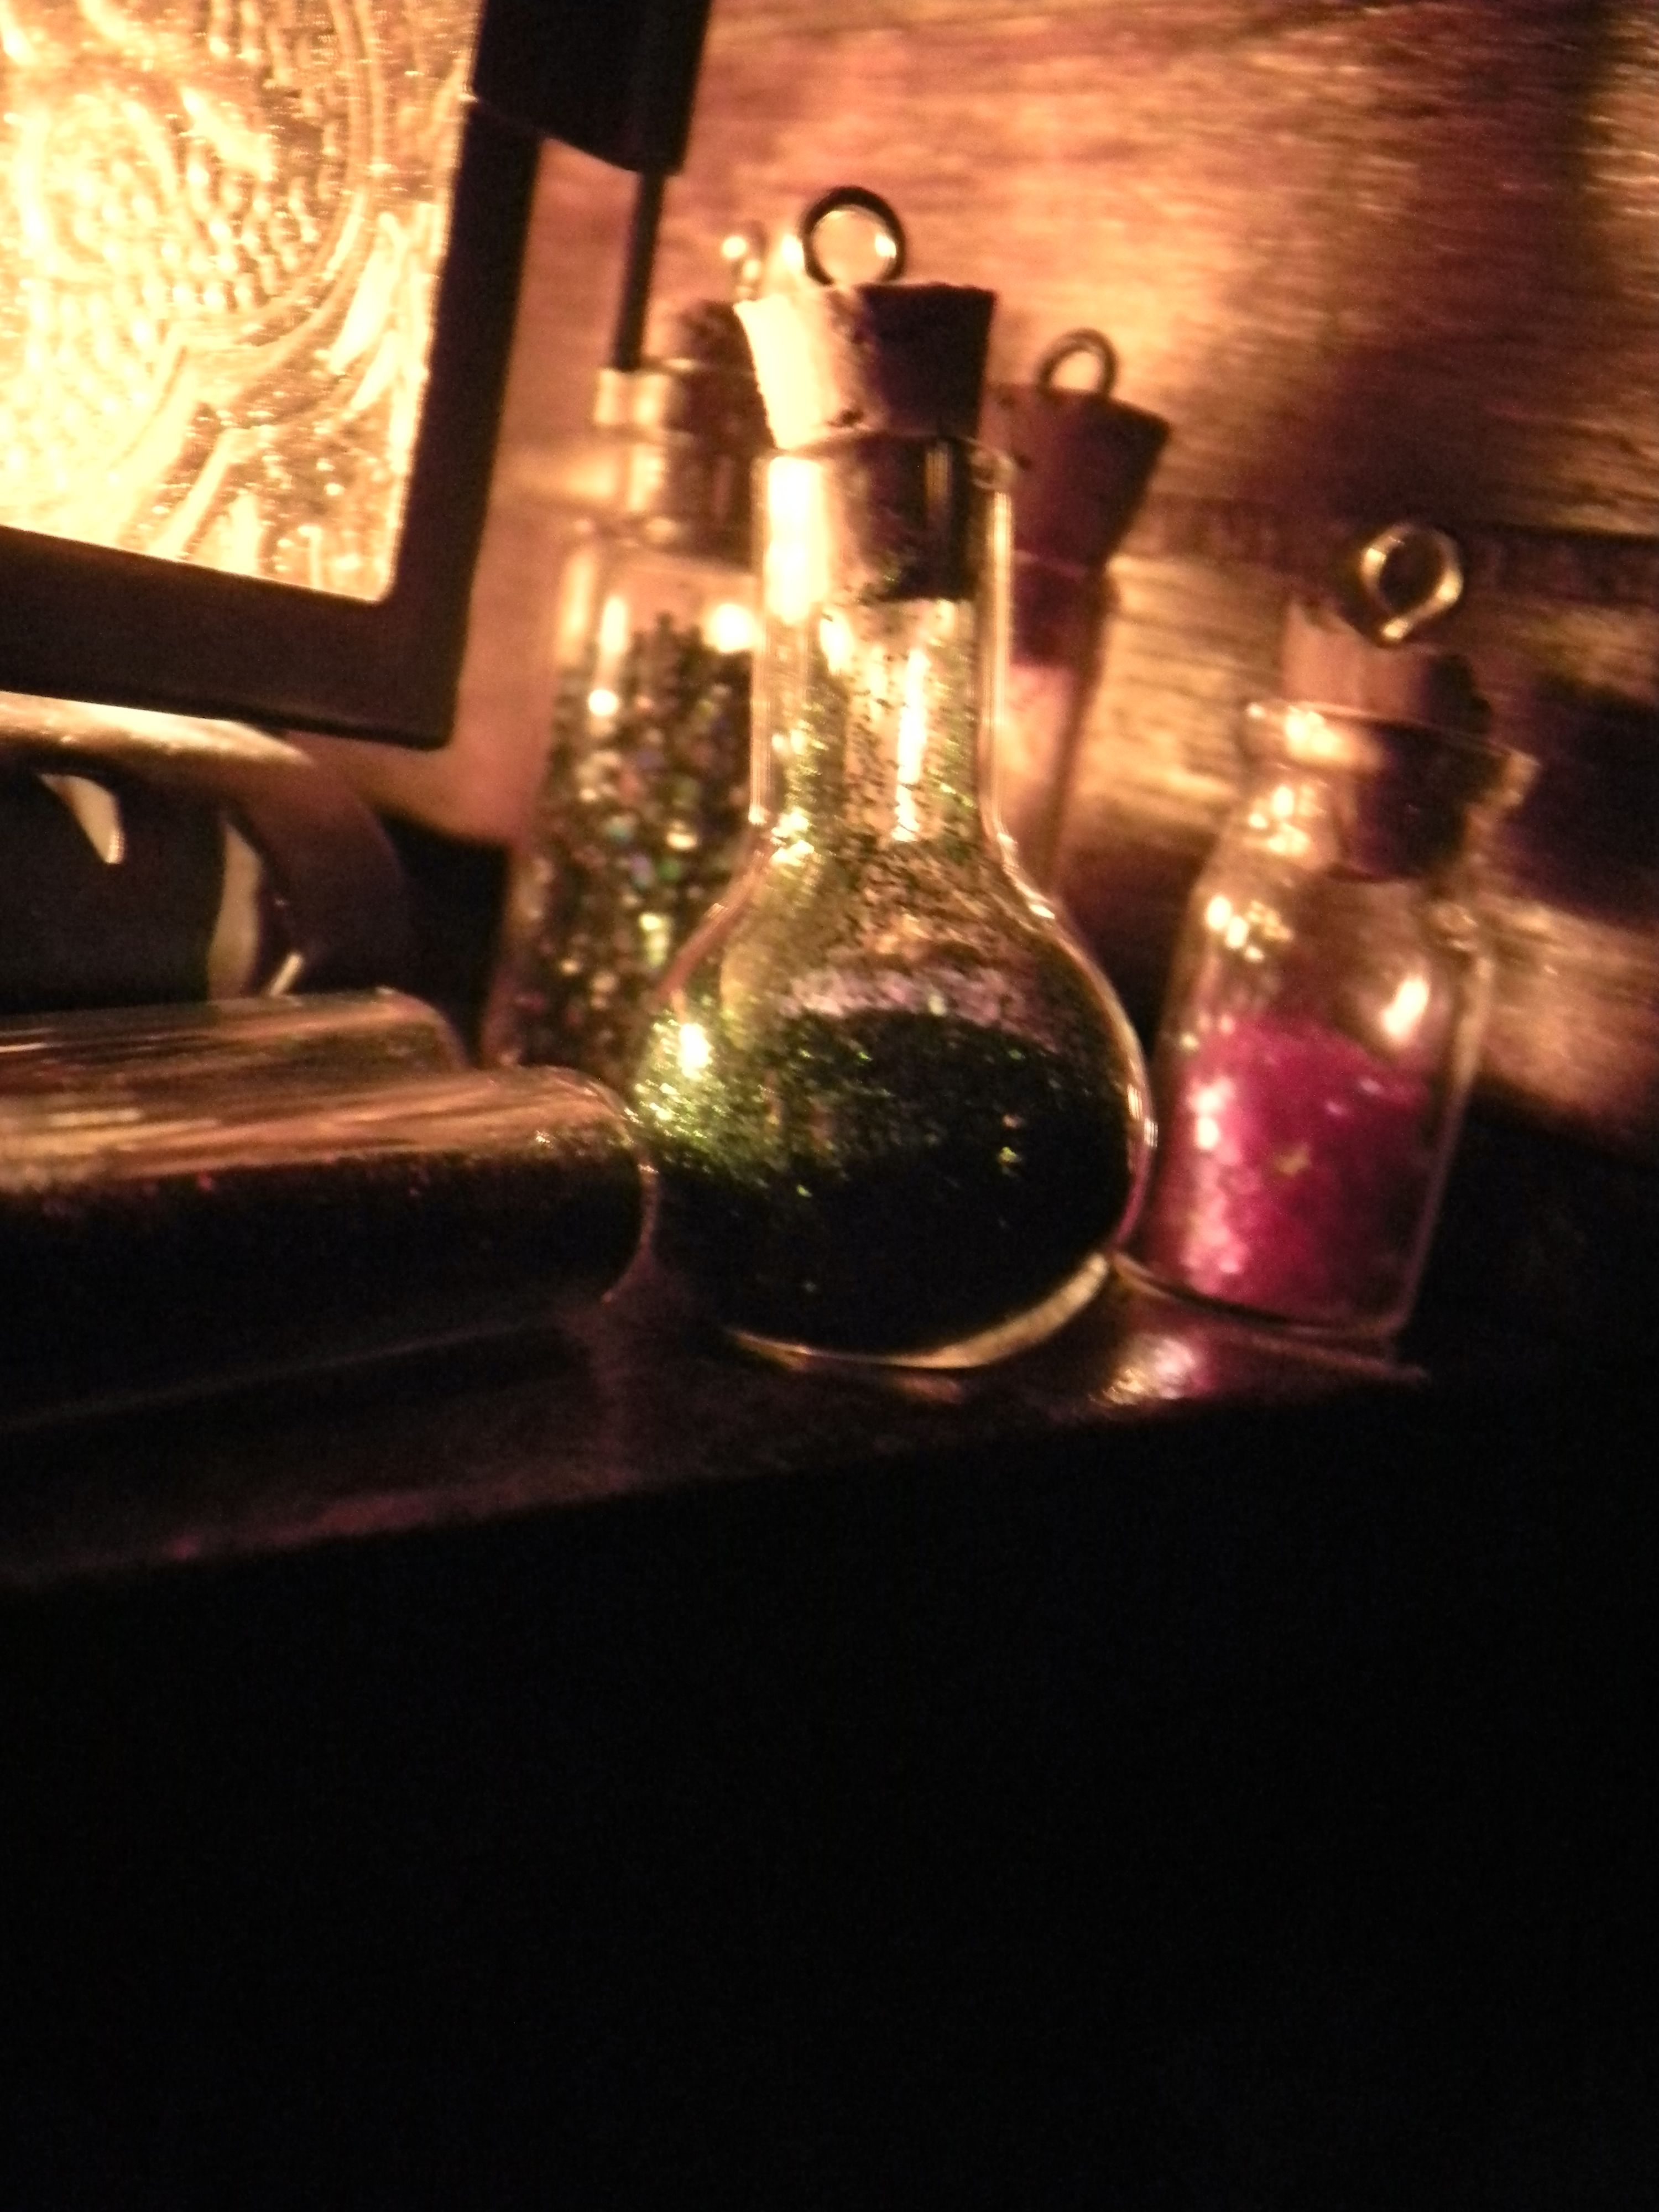 ~Pixie dust by the lantern By Veronica Beshara